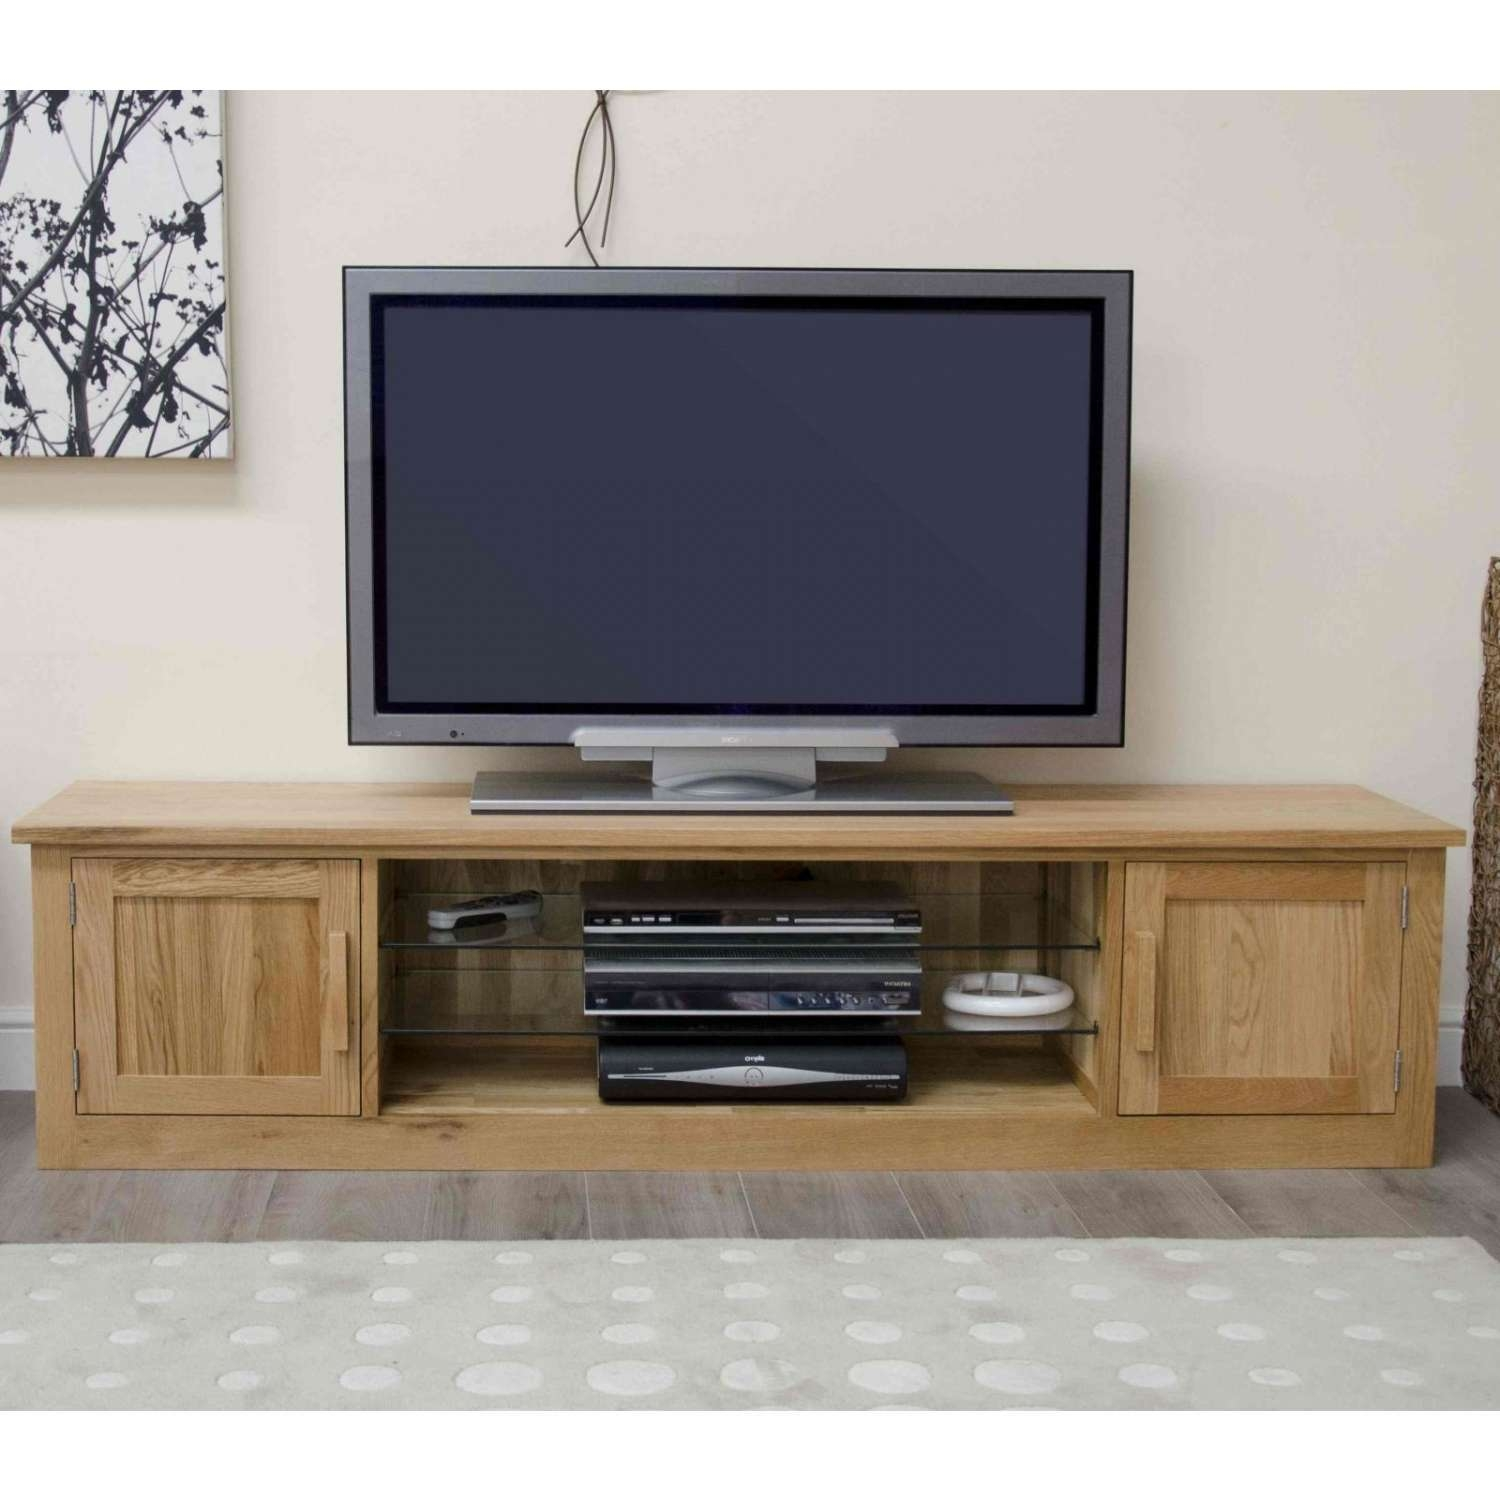 Arden Solid Oak Living Room Furniture Large Widescreen Tv Cabinet With Regard To Solid Oak Tv Stands (View 1 of 15)